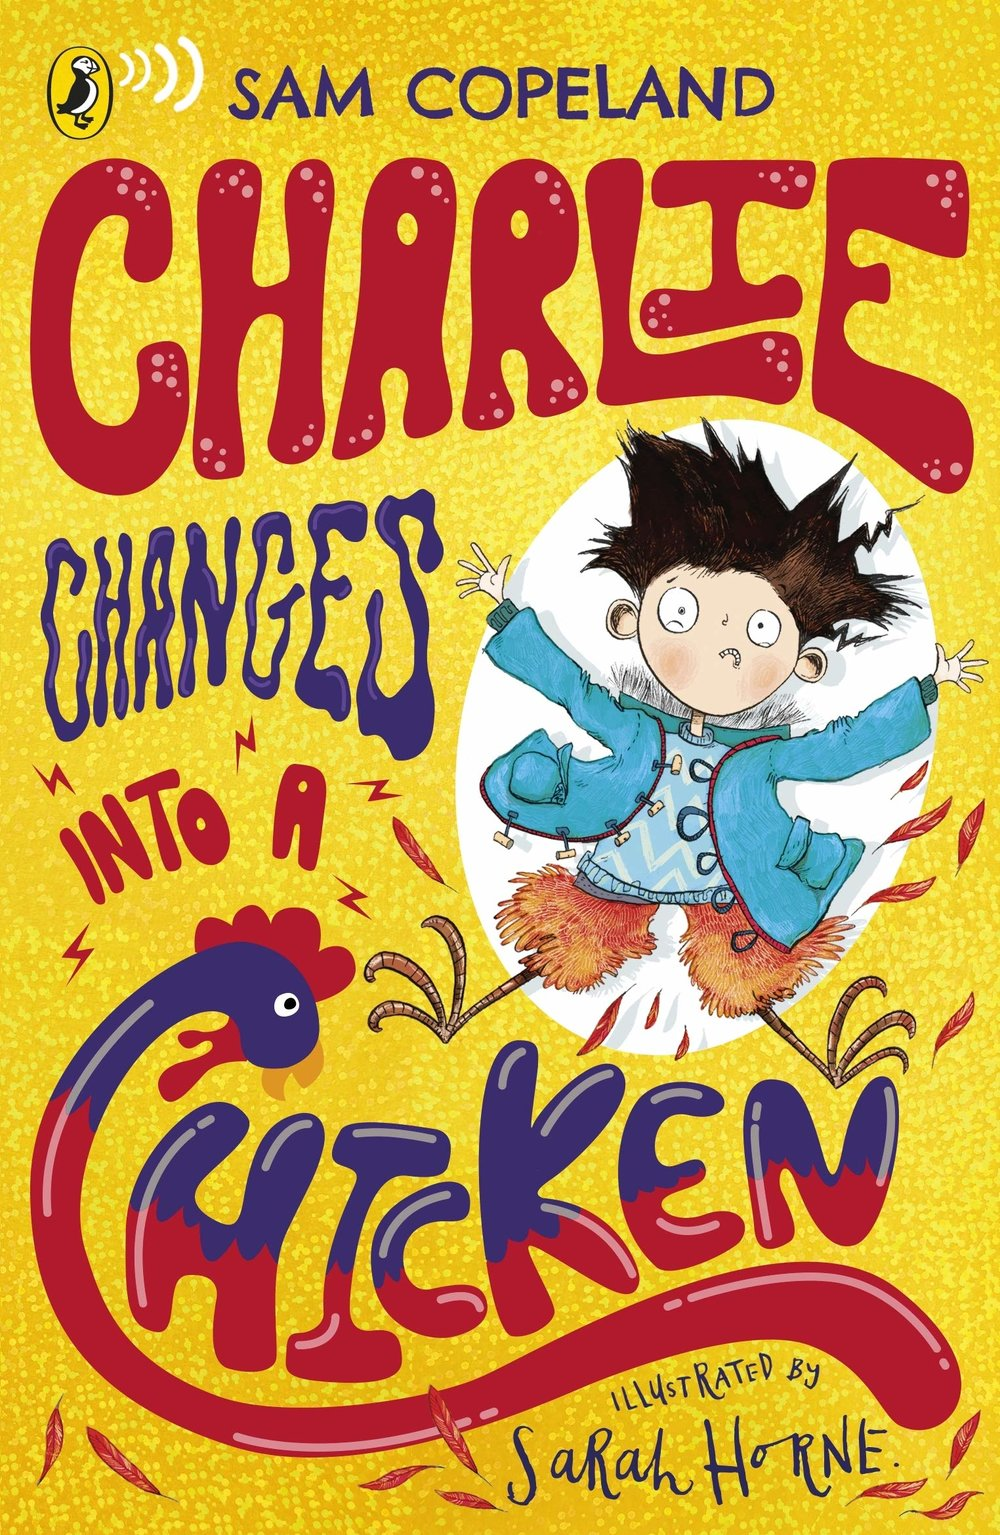 - CHARLIE CHANGES INTO A CHICKEN is out NOW from Puffin (Penguin Random House, and in 20 other countries!).A sequel will be published August 2019, with a third in the series coming early 2020.So what's it about then?Charlie McGuffin tries to be an optimist, but in reality he's a bit of a worrier.Some of the things Charlie is worried about:· His brother (who is in hospital)· Their very panicked parents· Unwanted attention from the school bully· The fact that he's started turning into animals!Even though every kid wants a superhero power, Charlie isn't keen on turning into a pigeon in the middle of the school play.But what happens if he does? Will he get sent away for Science to deal with? Will his parents crack under the extra stress?With the help of his three best friends, Charlie needs to find a way of dealing with his crazy new power - and fast!Sounds great, huh? Well why not click the 'Where To Buy' tab above? There's no reason why not. Unless your mouse has just broken. In that very particular unfortunate set of circumstances, go to your nearest mouse-purveyor and buy a mouse, and when you get back then click the 'Where to buy' tab. You really have no excuse.